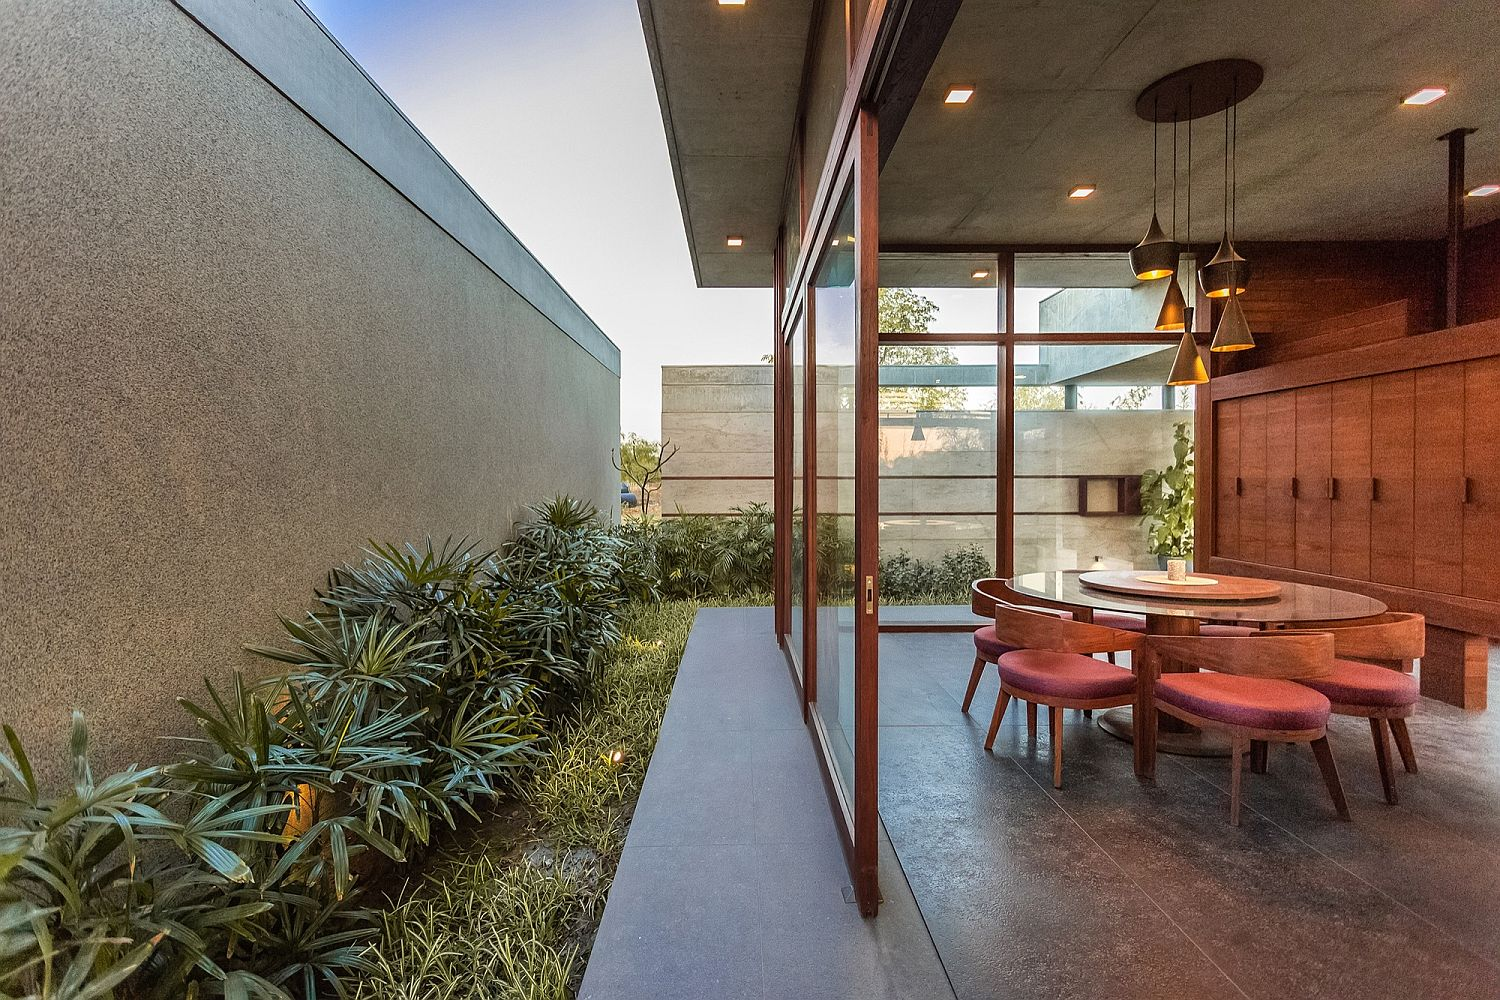 Sliding glass doors connect the dining area with the outdoors